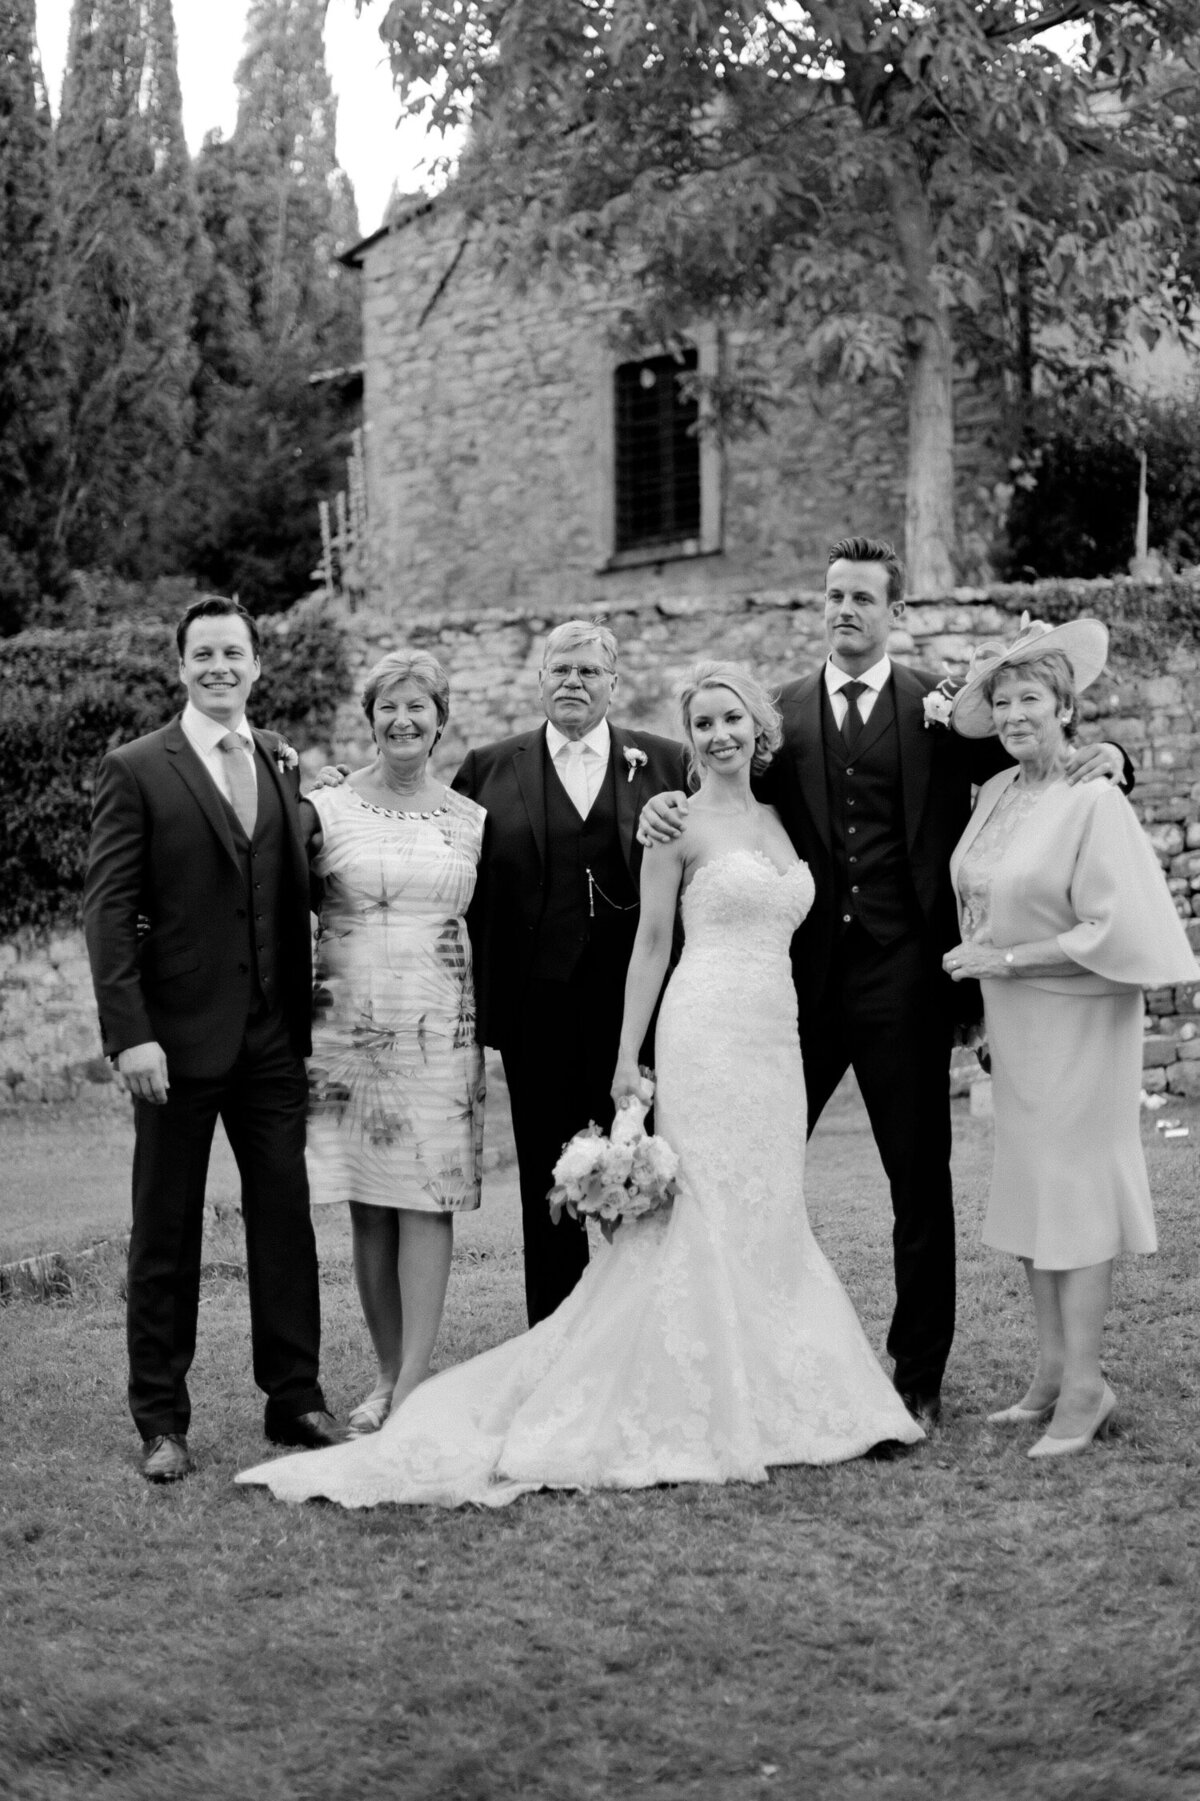 119_Tuscany_Luxury_Wedding_Photographer (134 von 215)_So thankful to be a luxury destination wedding photographer in Tuscany! Claire and James invited their beloved family & friends from London to their luxury wedding in Tuscany.